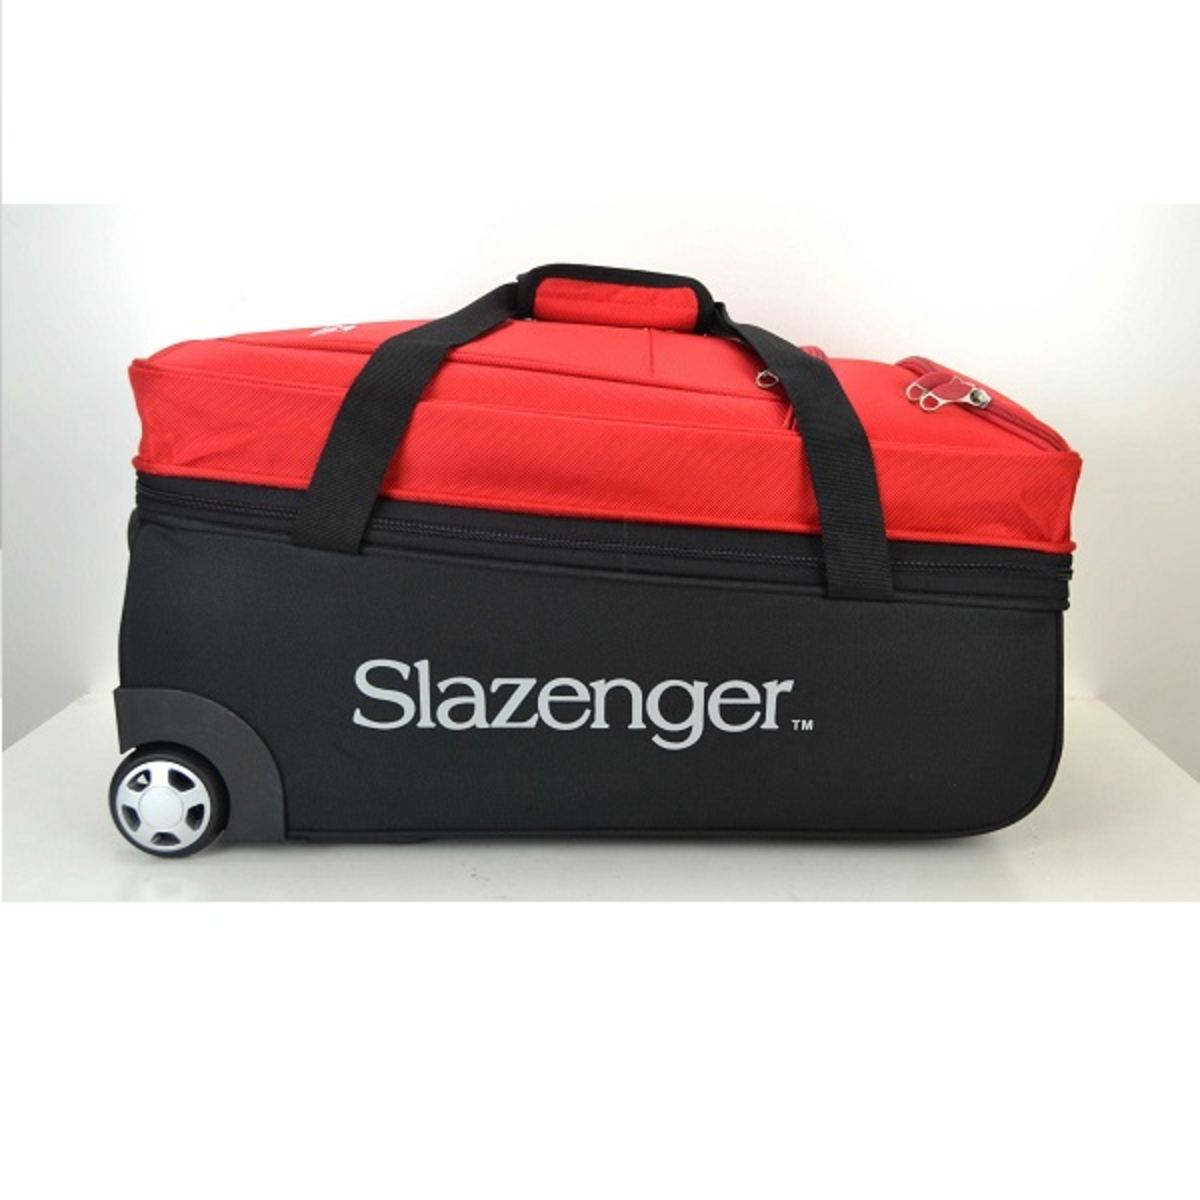 7d0a01077f Slazenger Rolling Duffle Bag with Trolley 22inch | Go Shop